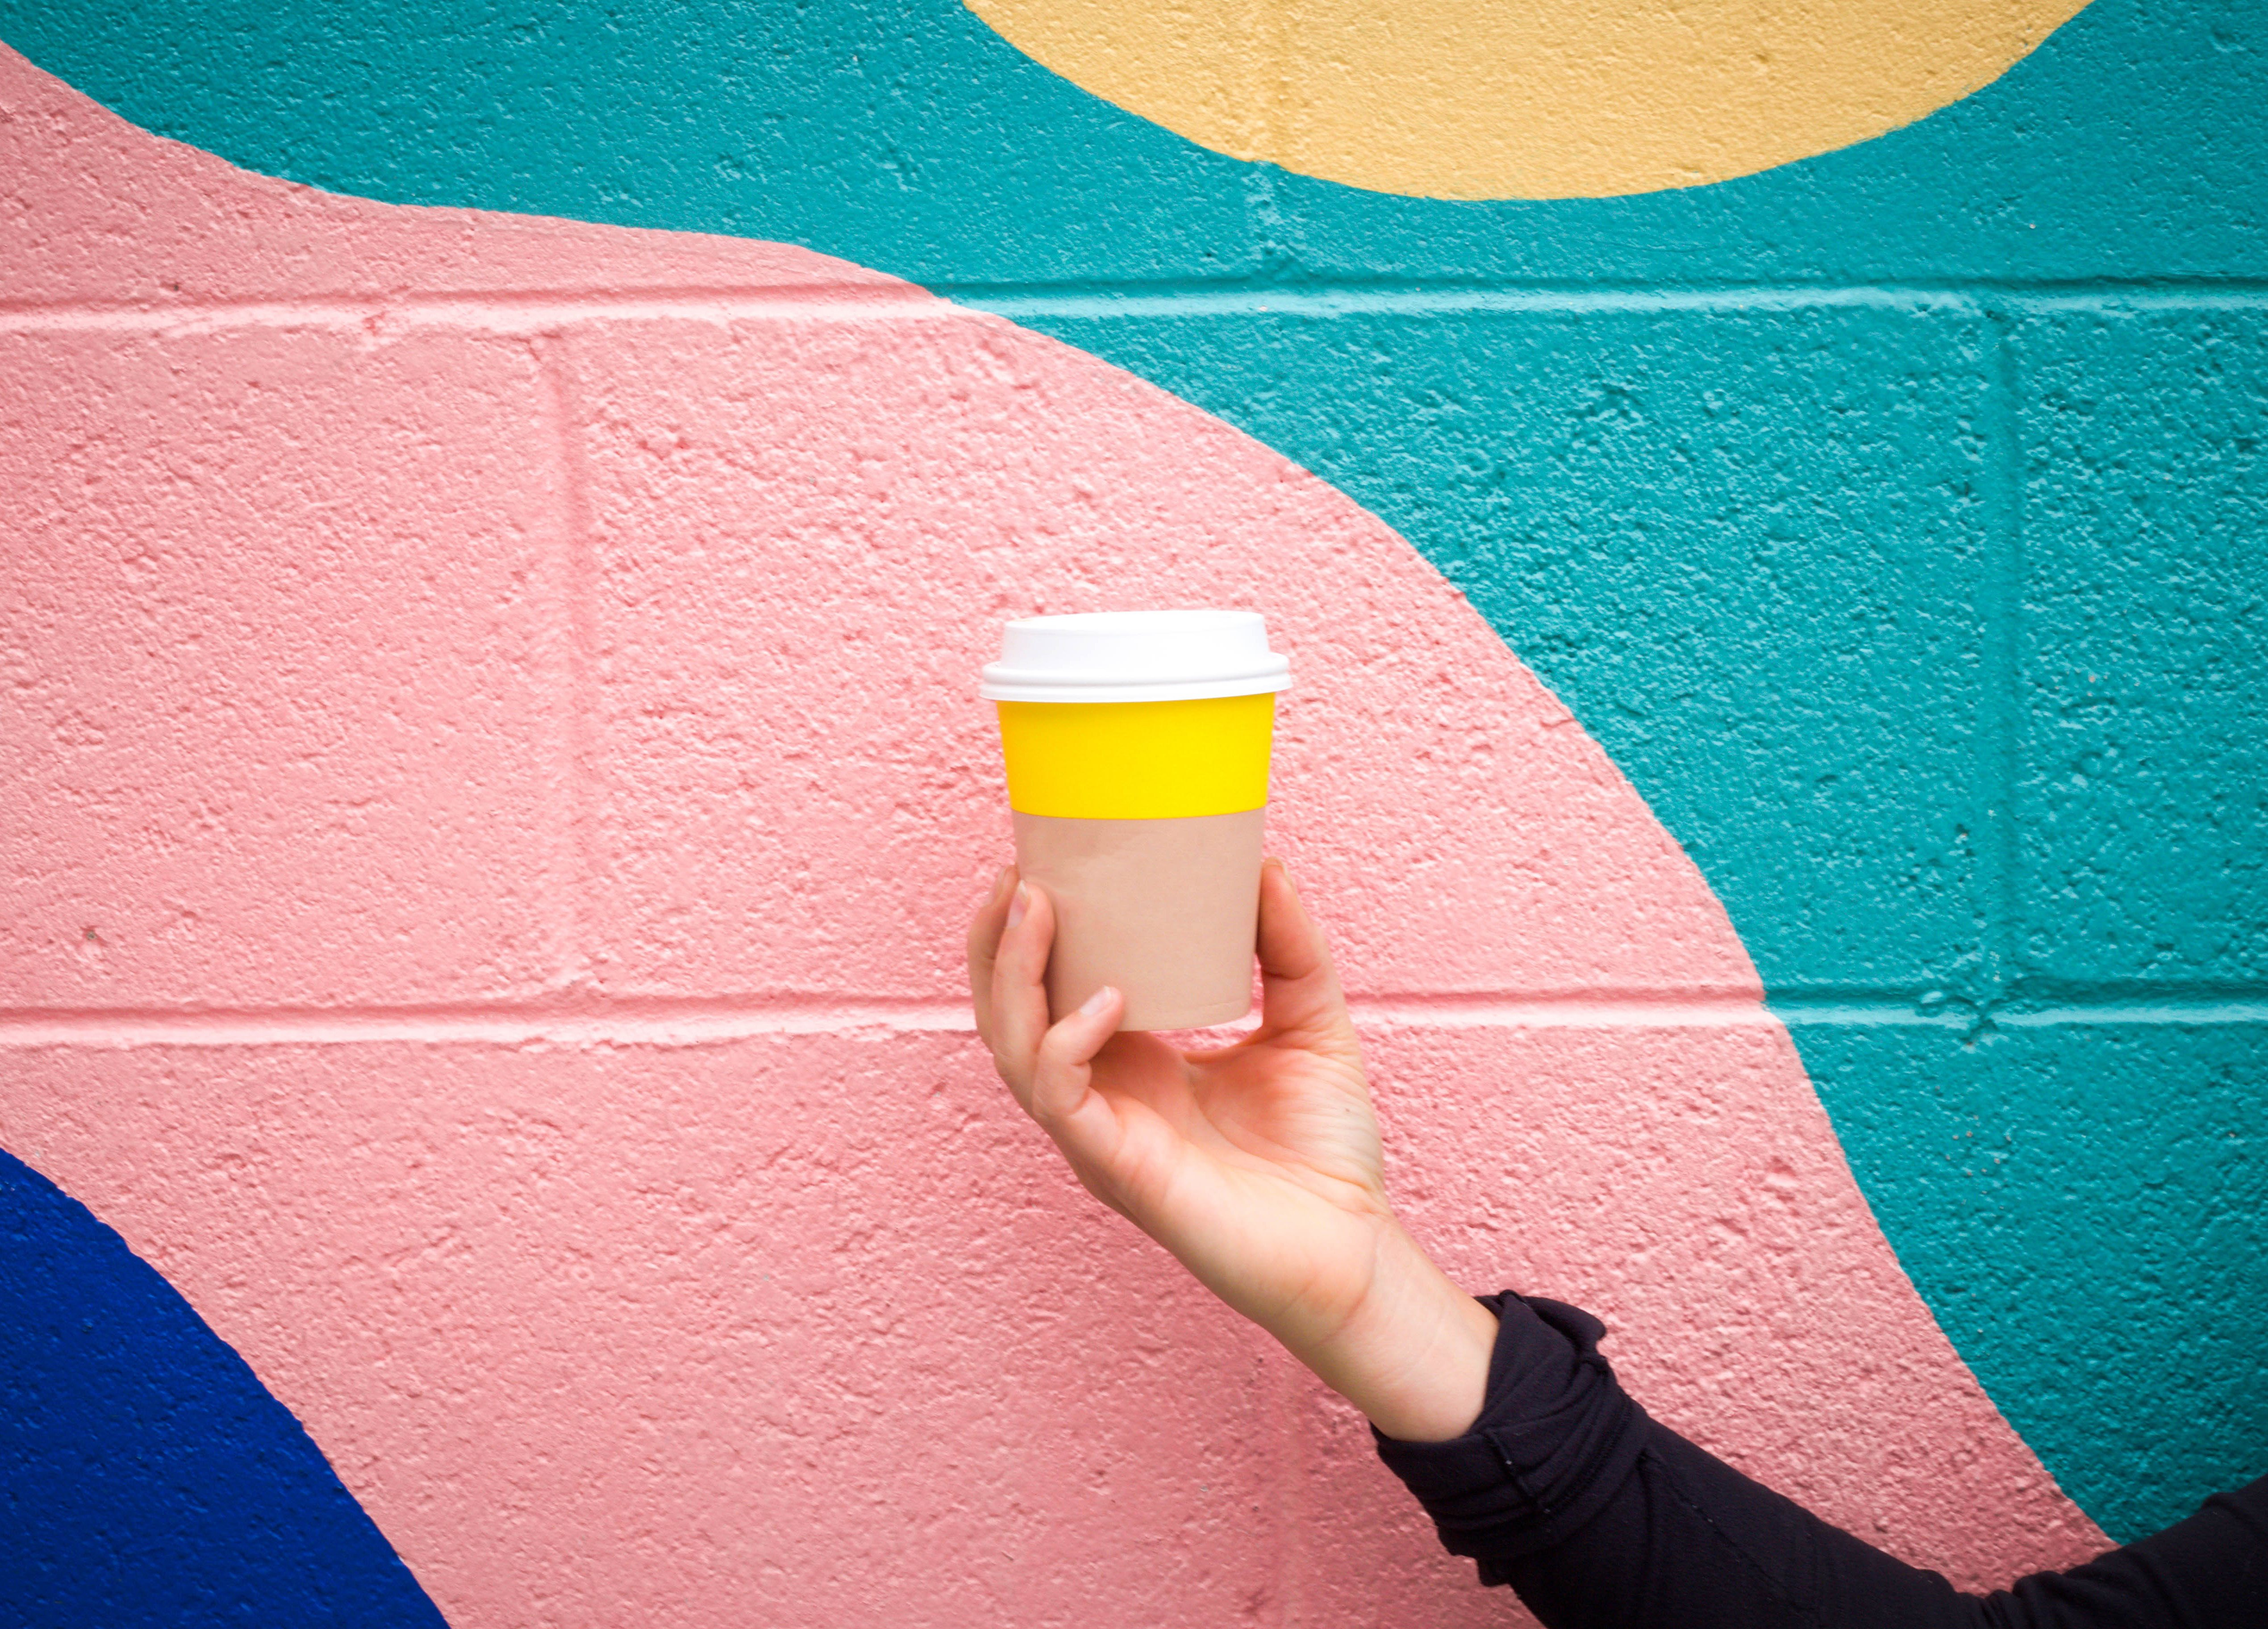 Making Digital Goodness Tangible, With Material Design featured image